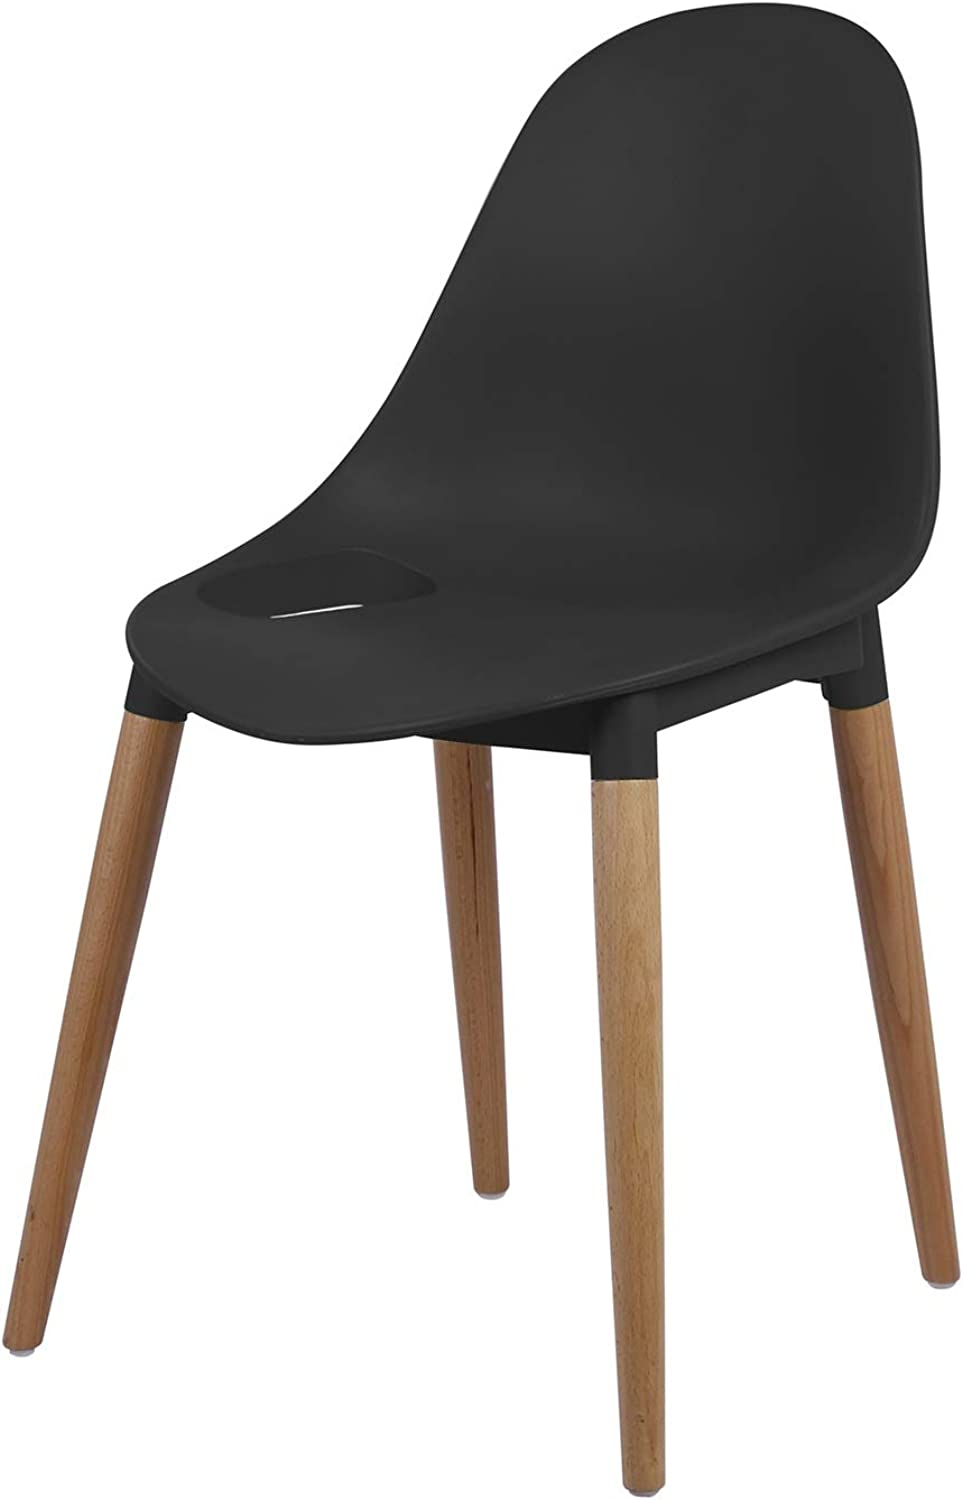 LRW Plastic Backrest Chair, Adult Leisure Chair, Solid Wood Office Chair, Creative Conference Chair, Black